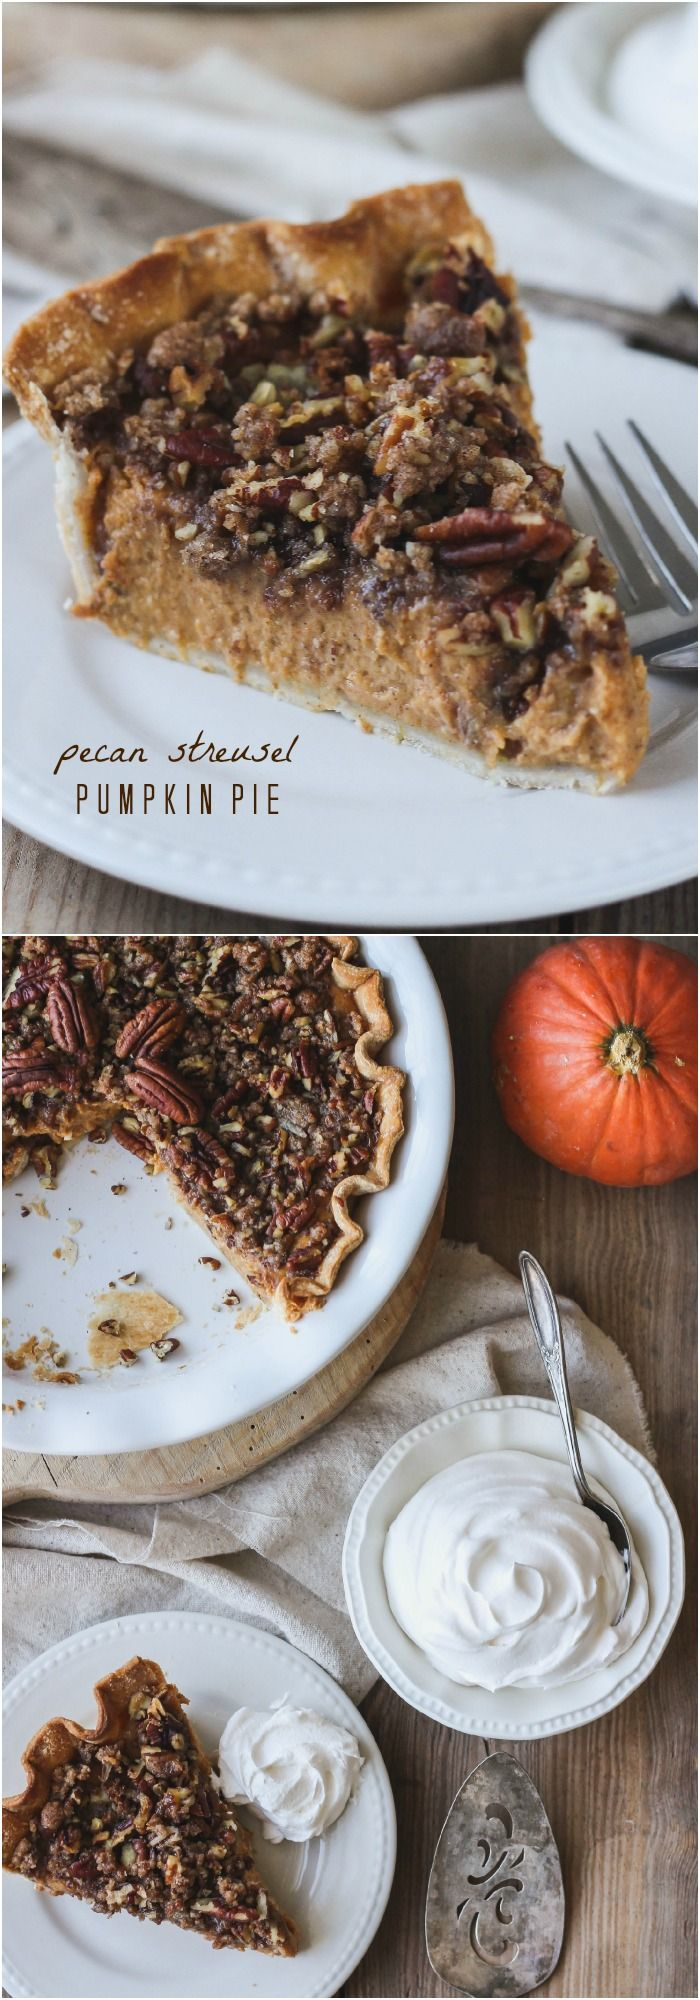 The perfect pumpkin pie topped with a crunchy, sweet pecan streusel! A must for the holidays! | LoveGrowsWild.com